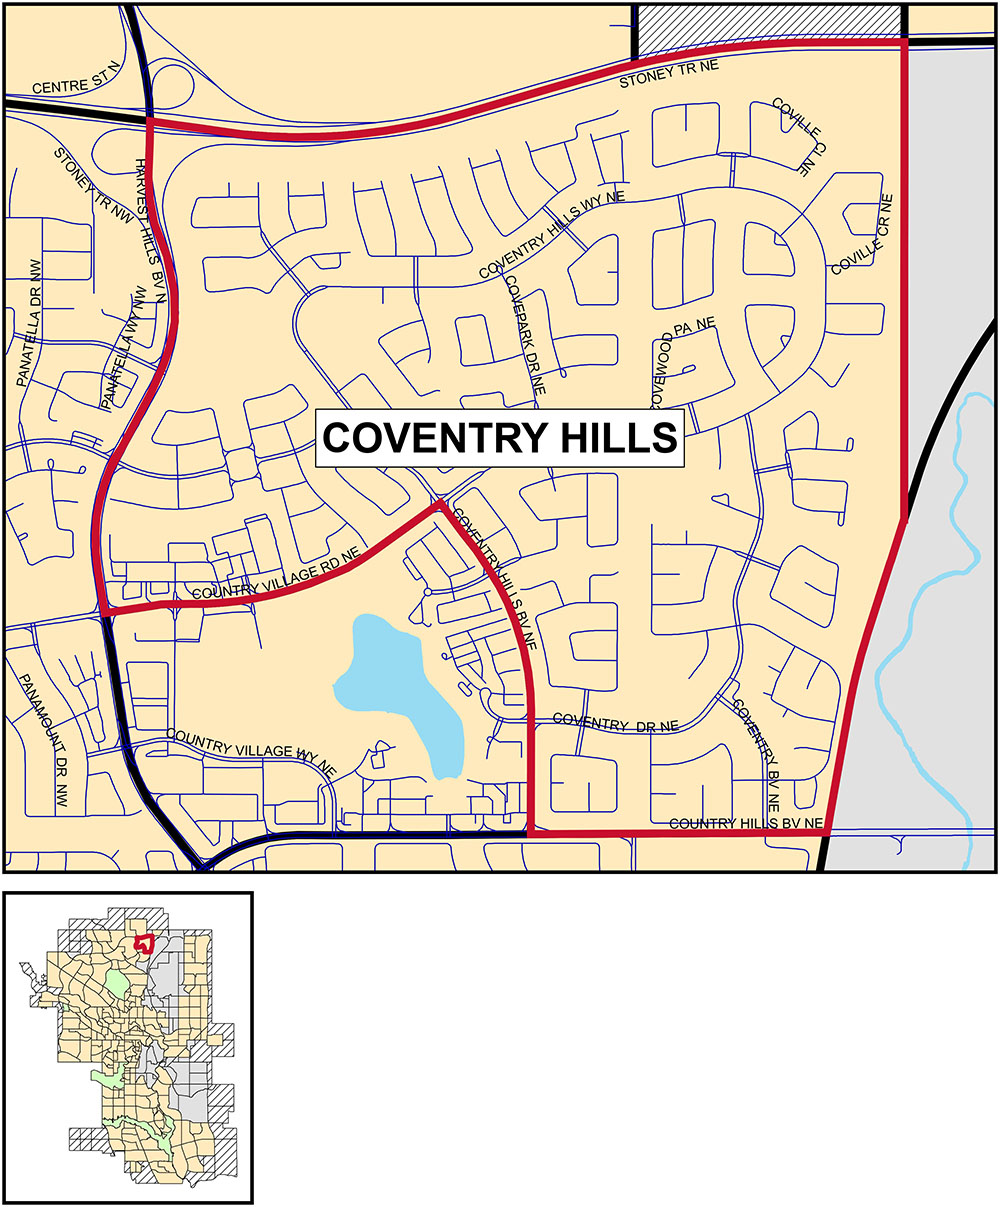 Coventry Hills community profile